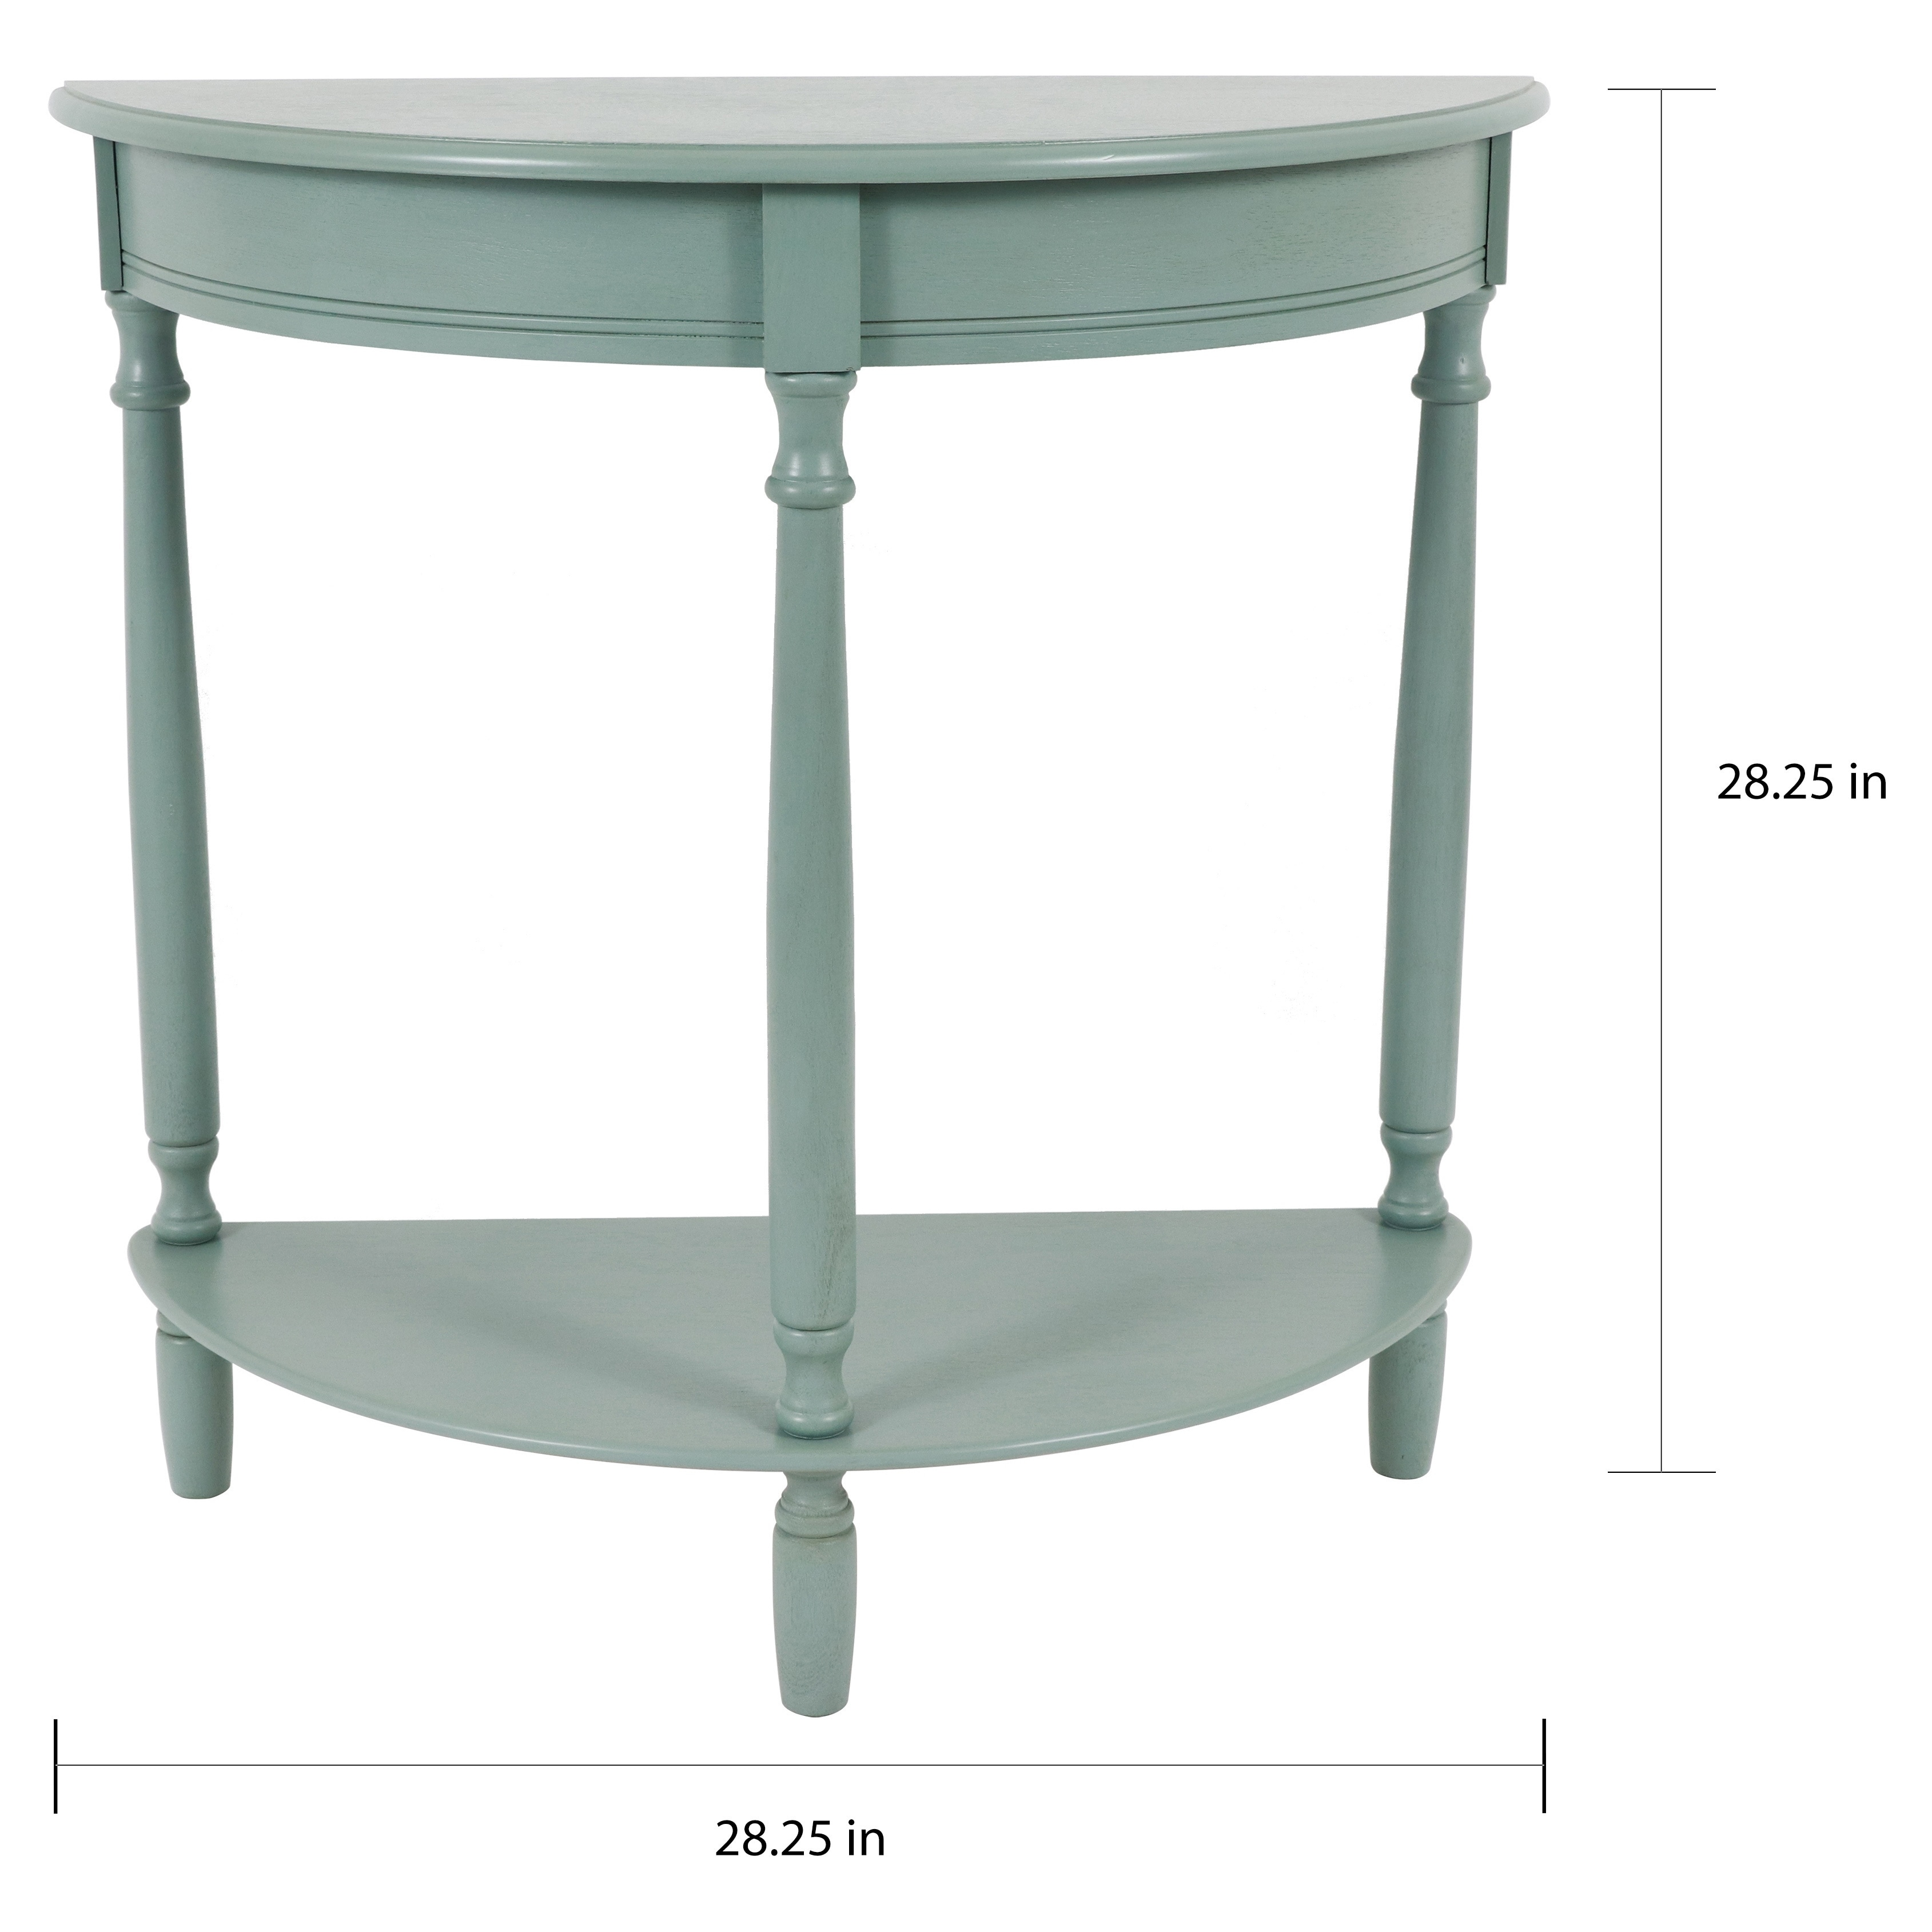 Picture of: Copper Grove Braunau Half Circle Round Accent Table On Sale Overstock 28587050 Antique Iced Blue N A